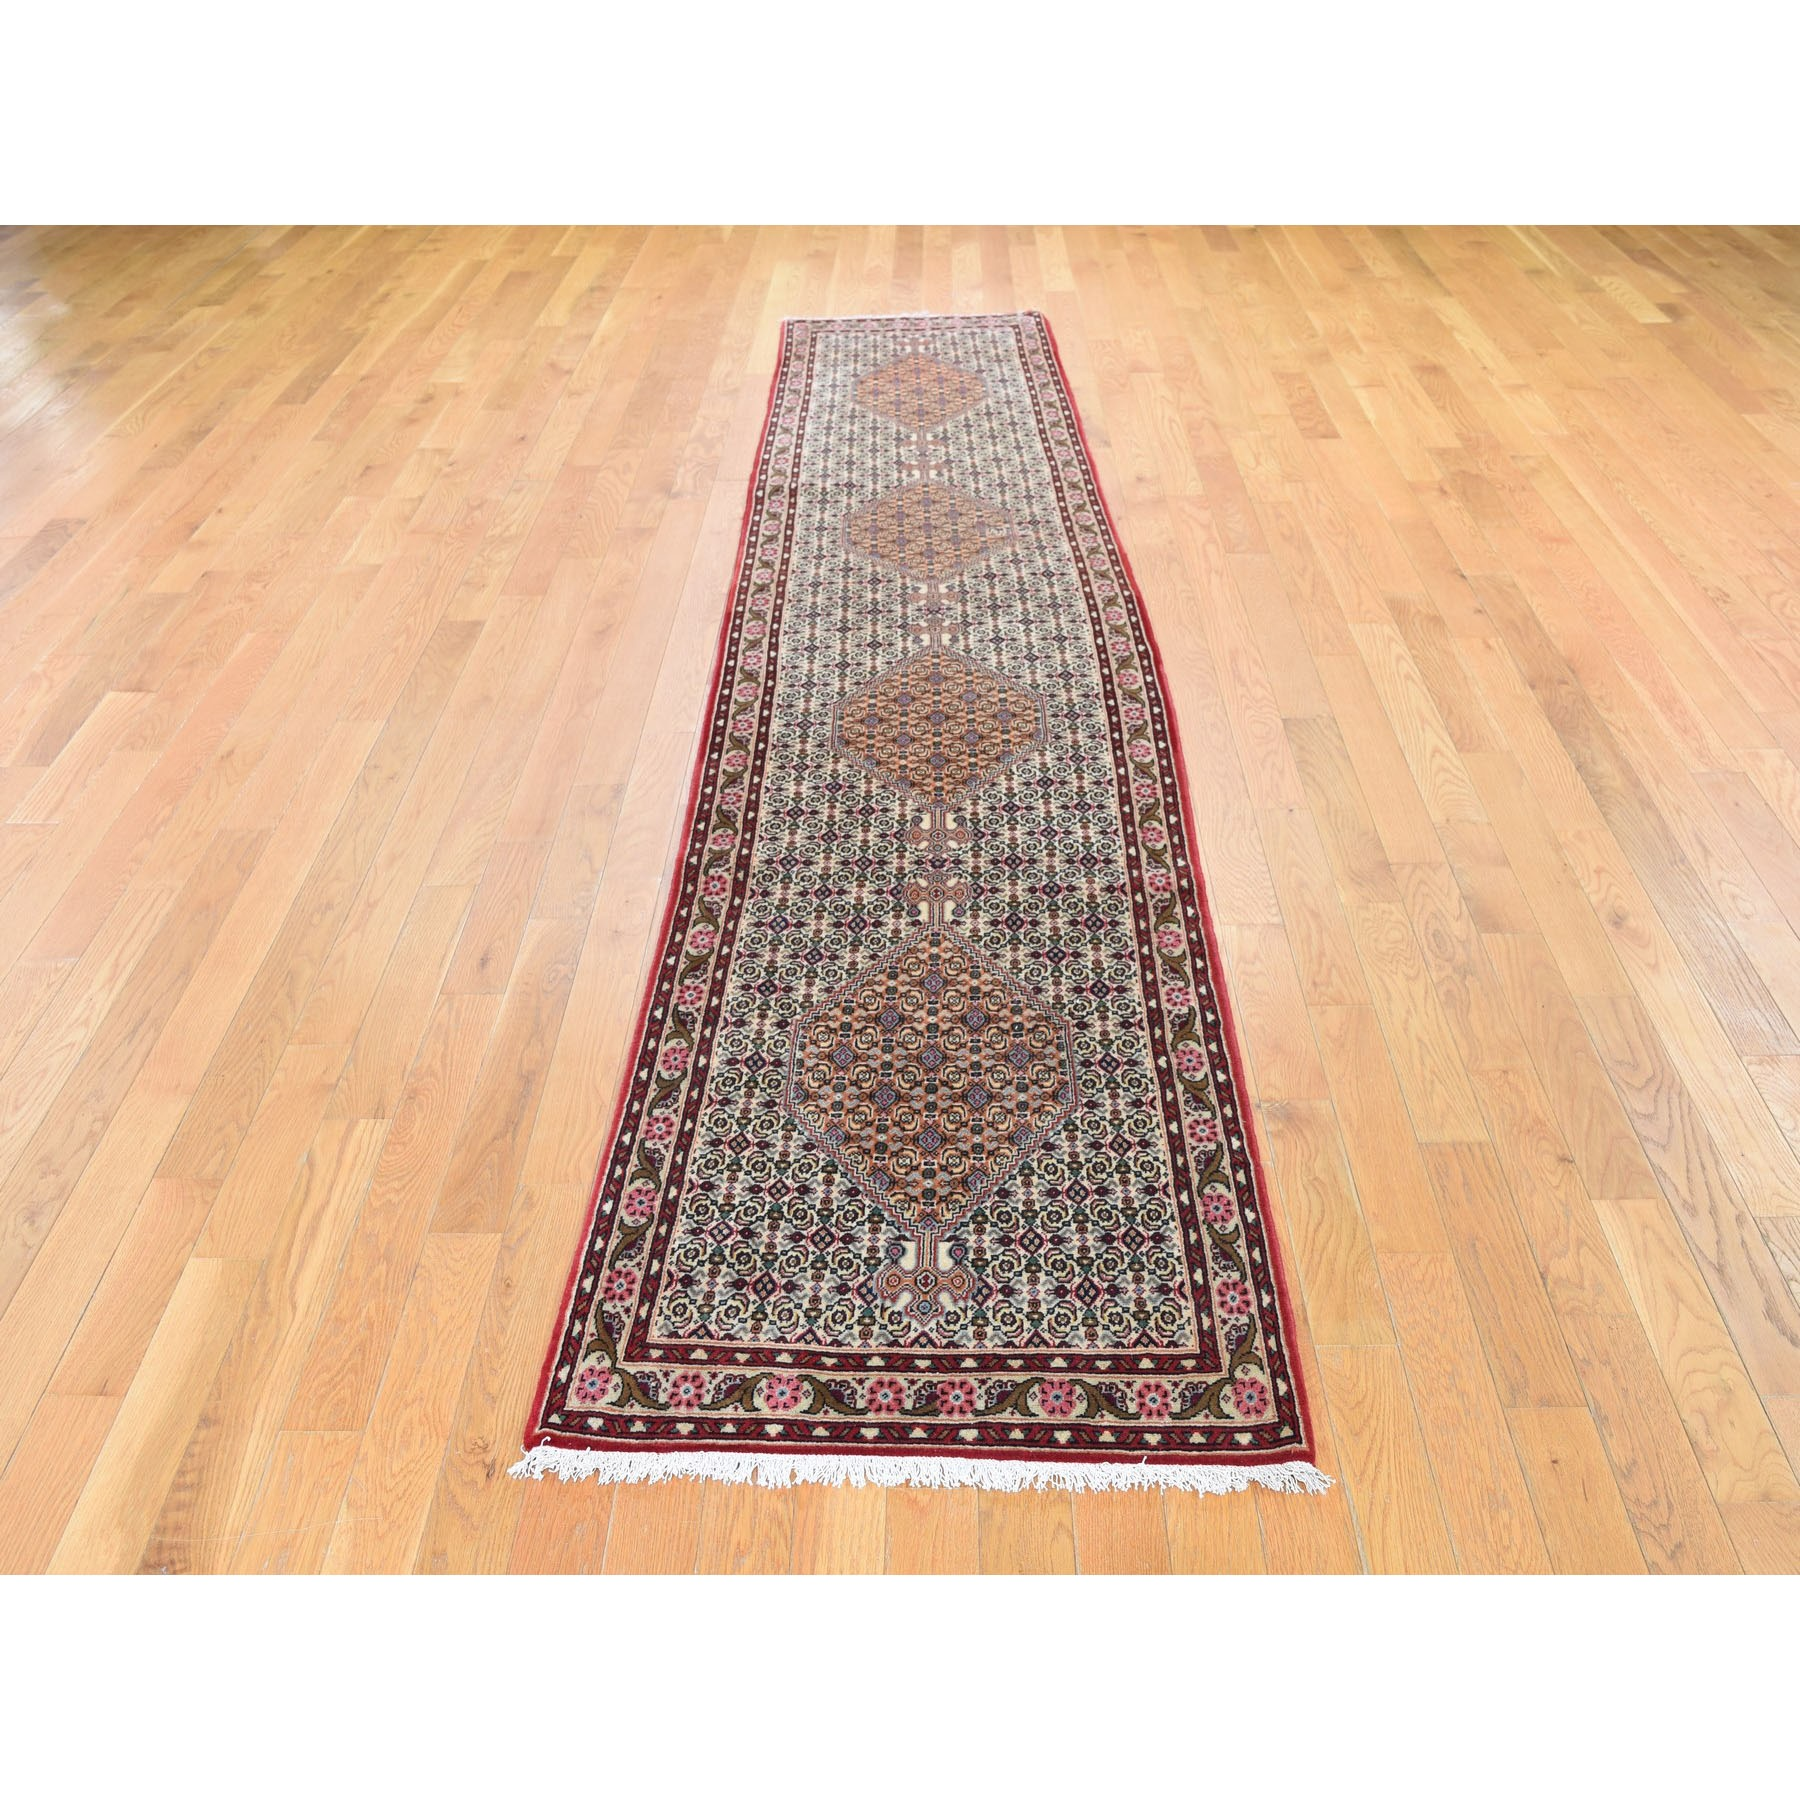 "2'4""x11'4"" Ivory New Persian Bijar Pure Wool Hand Knotted Narrow Runner Hand Knotted Oriental Rug"